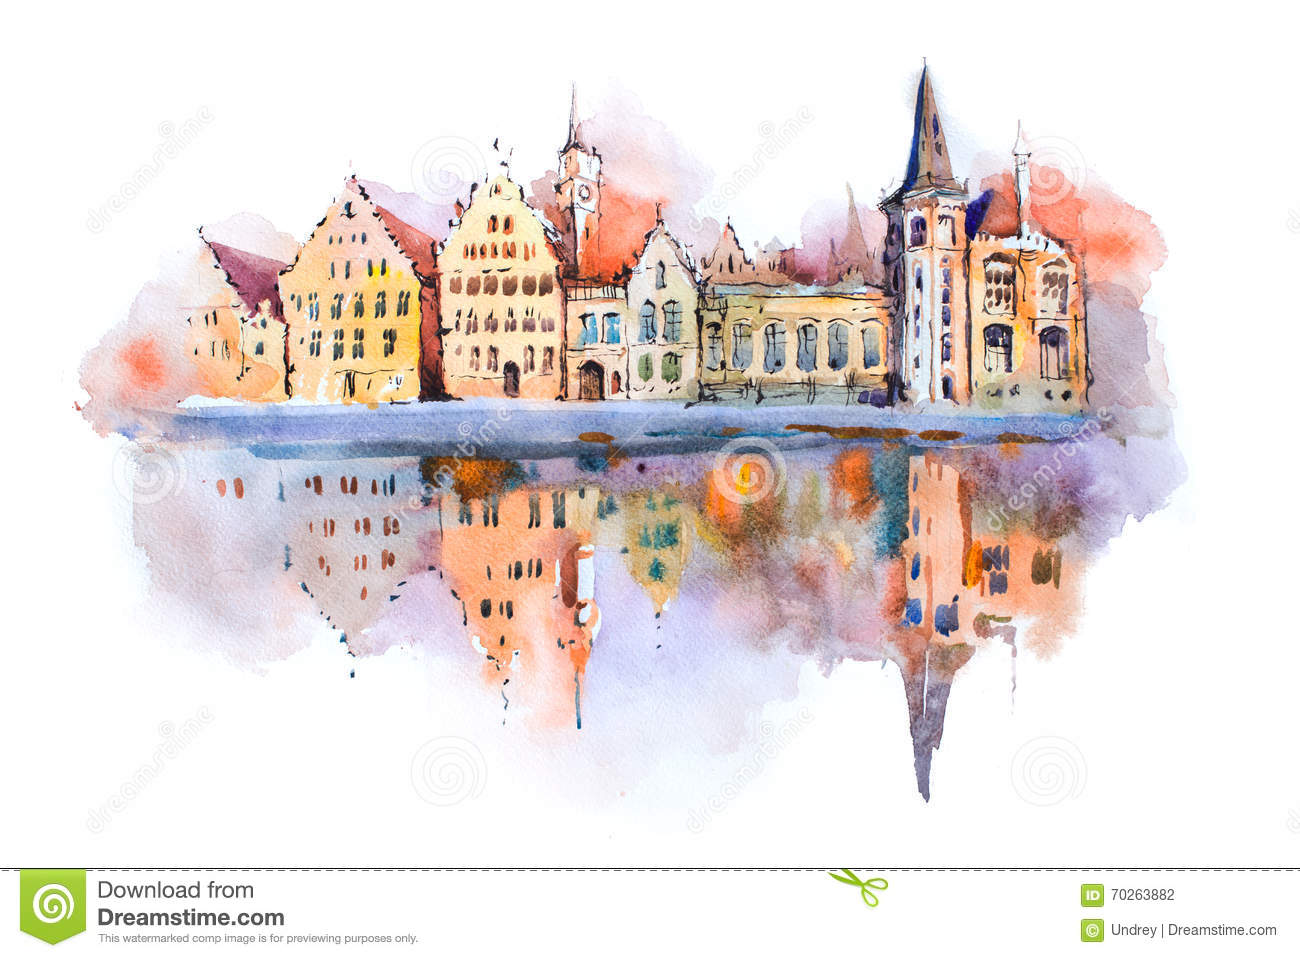 Bruges cityscape watercolor drawing, Belgium. Brugge canal aquarelle painting